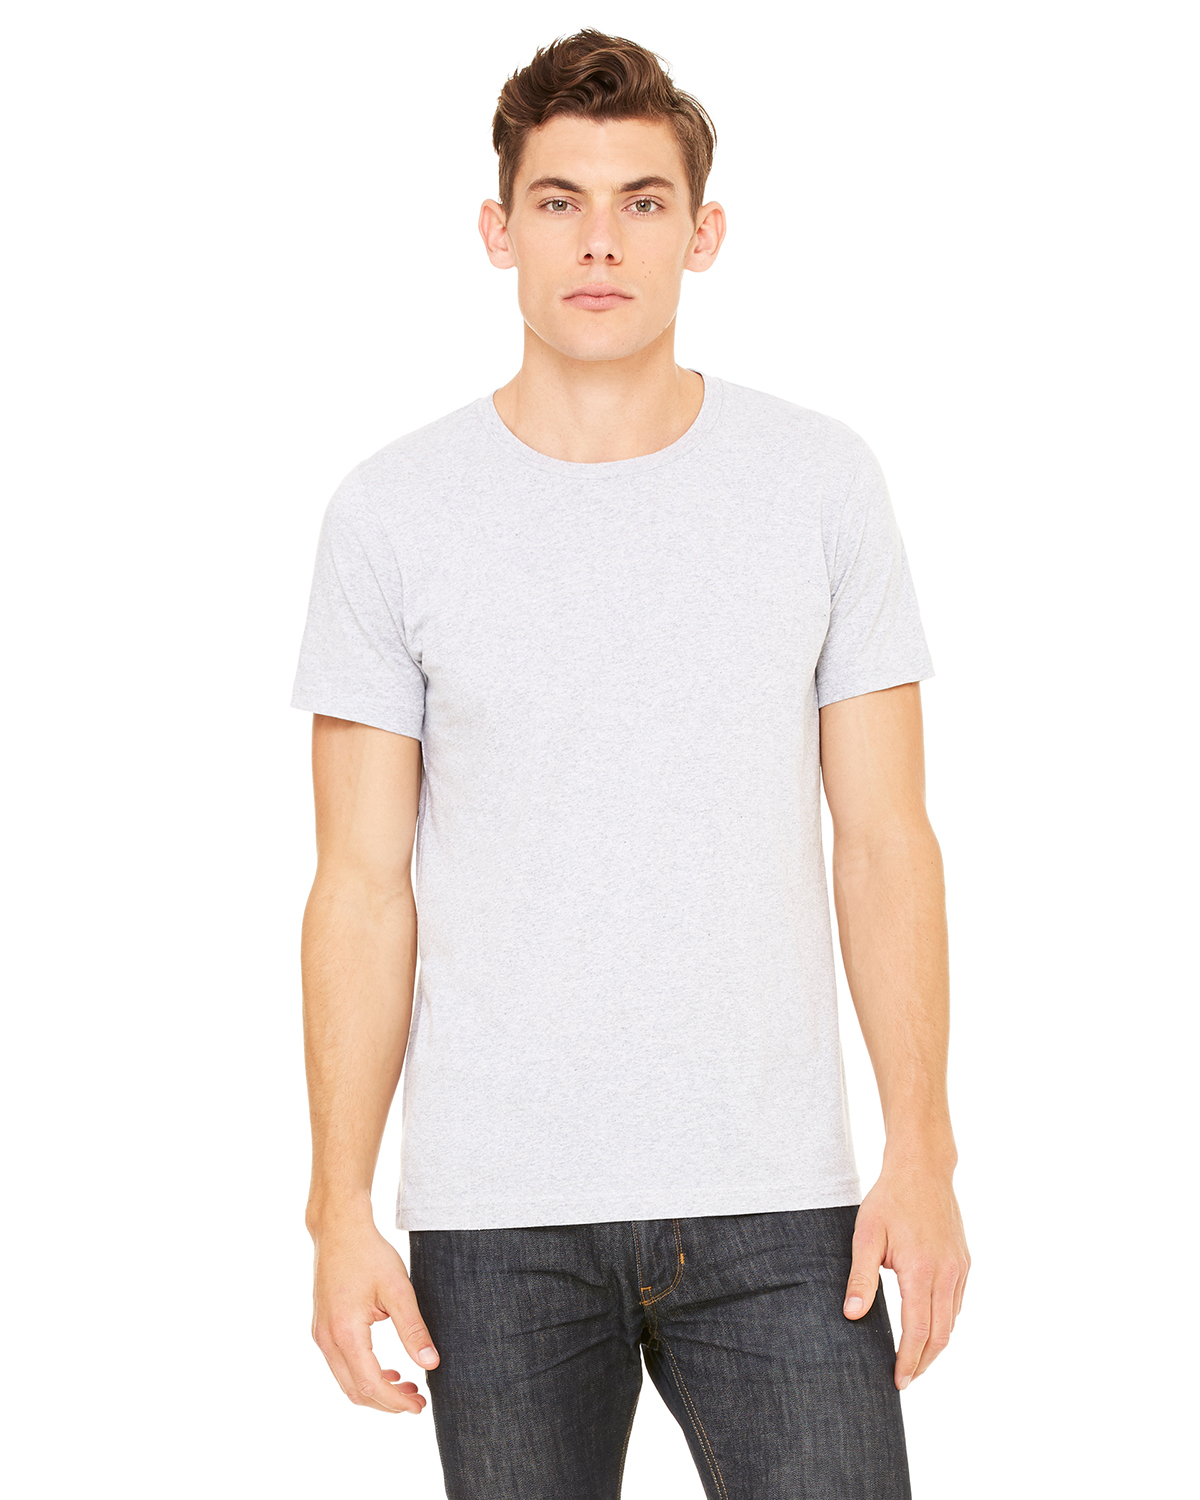 CANVAS Ringspun Unisex T-Shirt